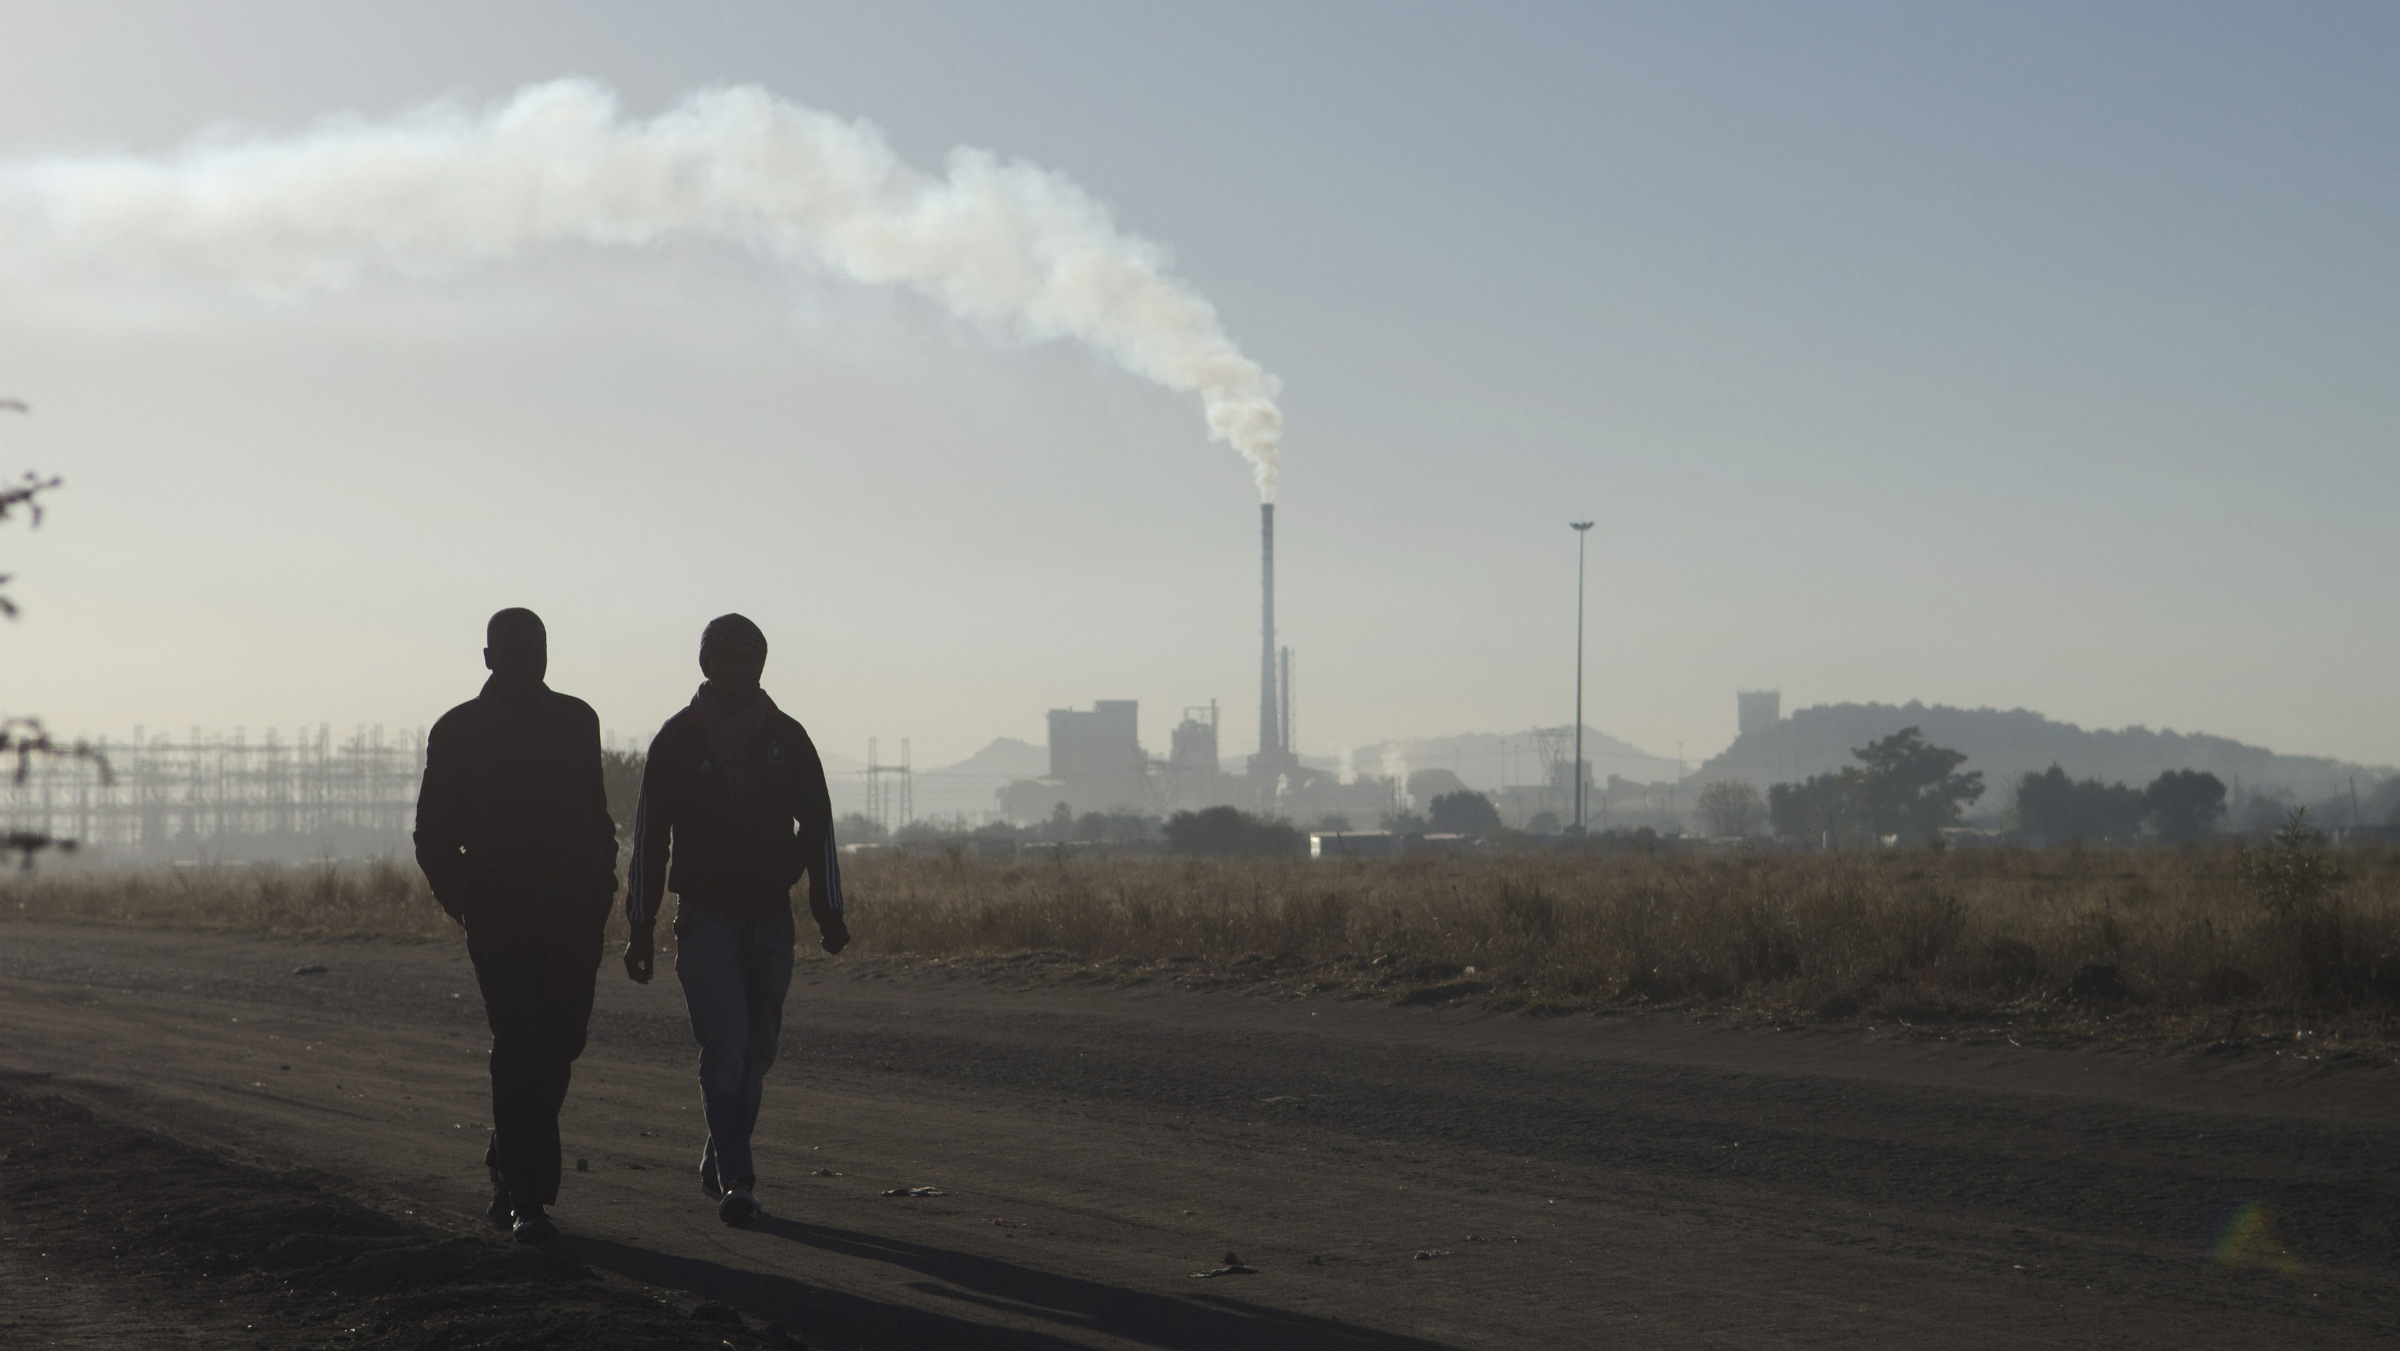 Workers walk past a Lonmin's Marikana platinum mine, June 24, 2014. Differences over possible job cuts in South Africa's platinum mines emerged on Tuesday as mining union AMCU prepared to sign a three-year wage deal with the world's top producers of the metal to end a crippling five-month strike. The Association of Mineworkers and Construction Union (AMCU) on Monday declared an end to the longest and costliest strike in South African history. REUTERS/Skyler Reid